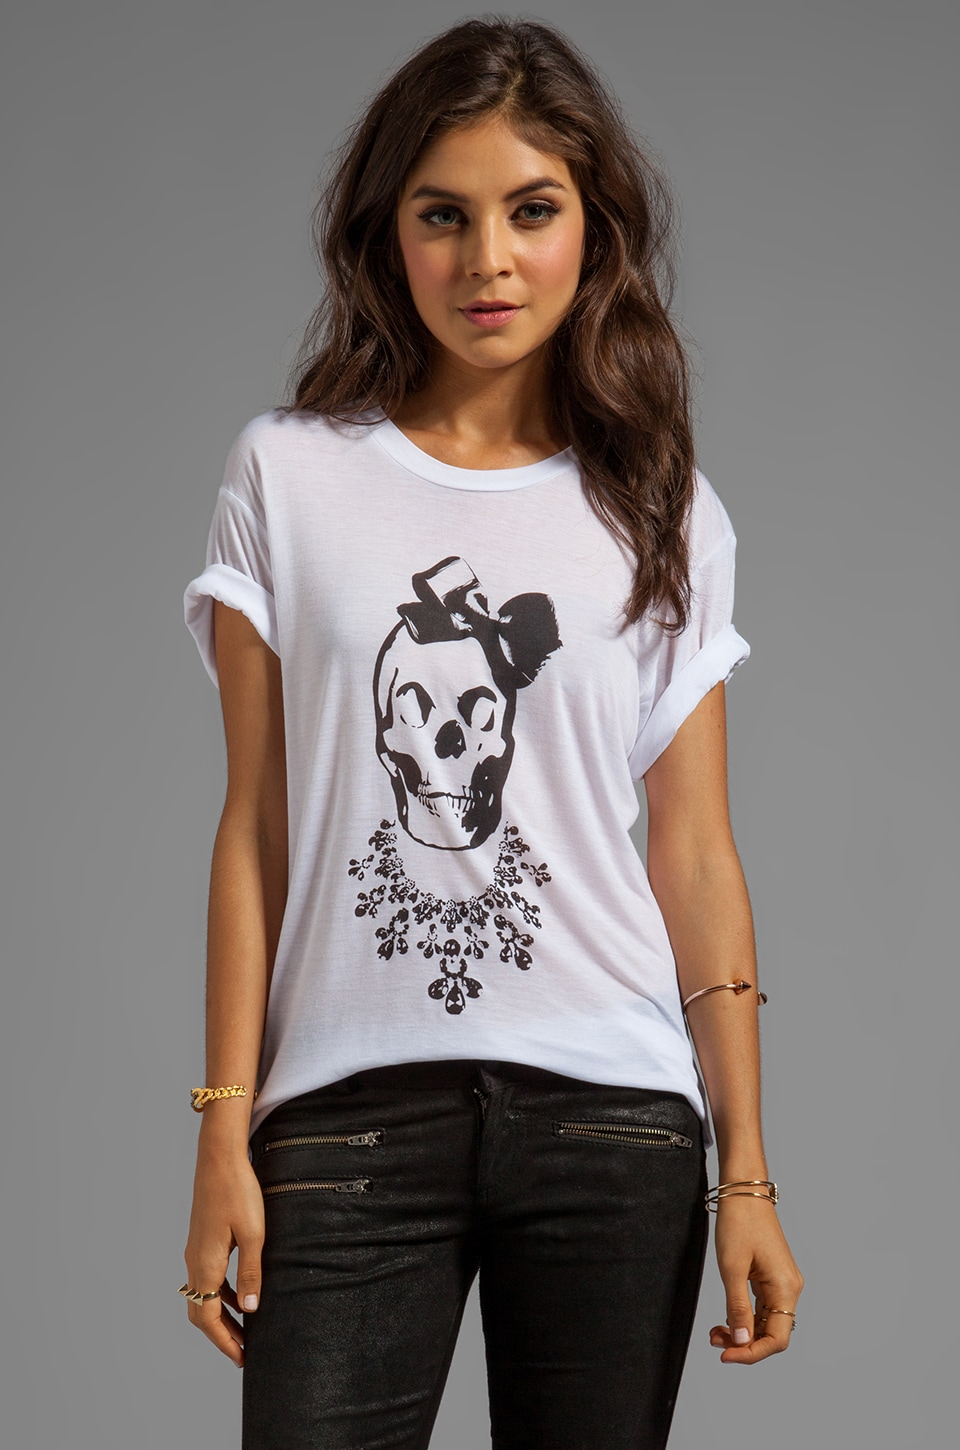 Sauce Bow Skull Short Sleeve Tee in White